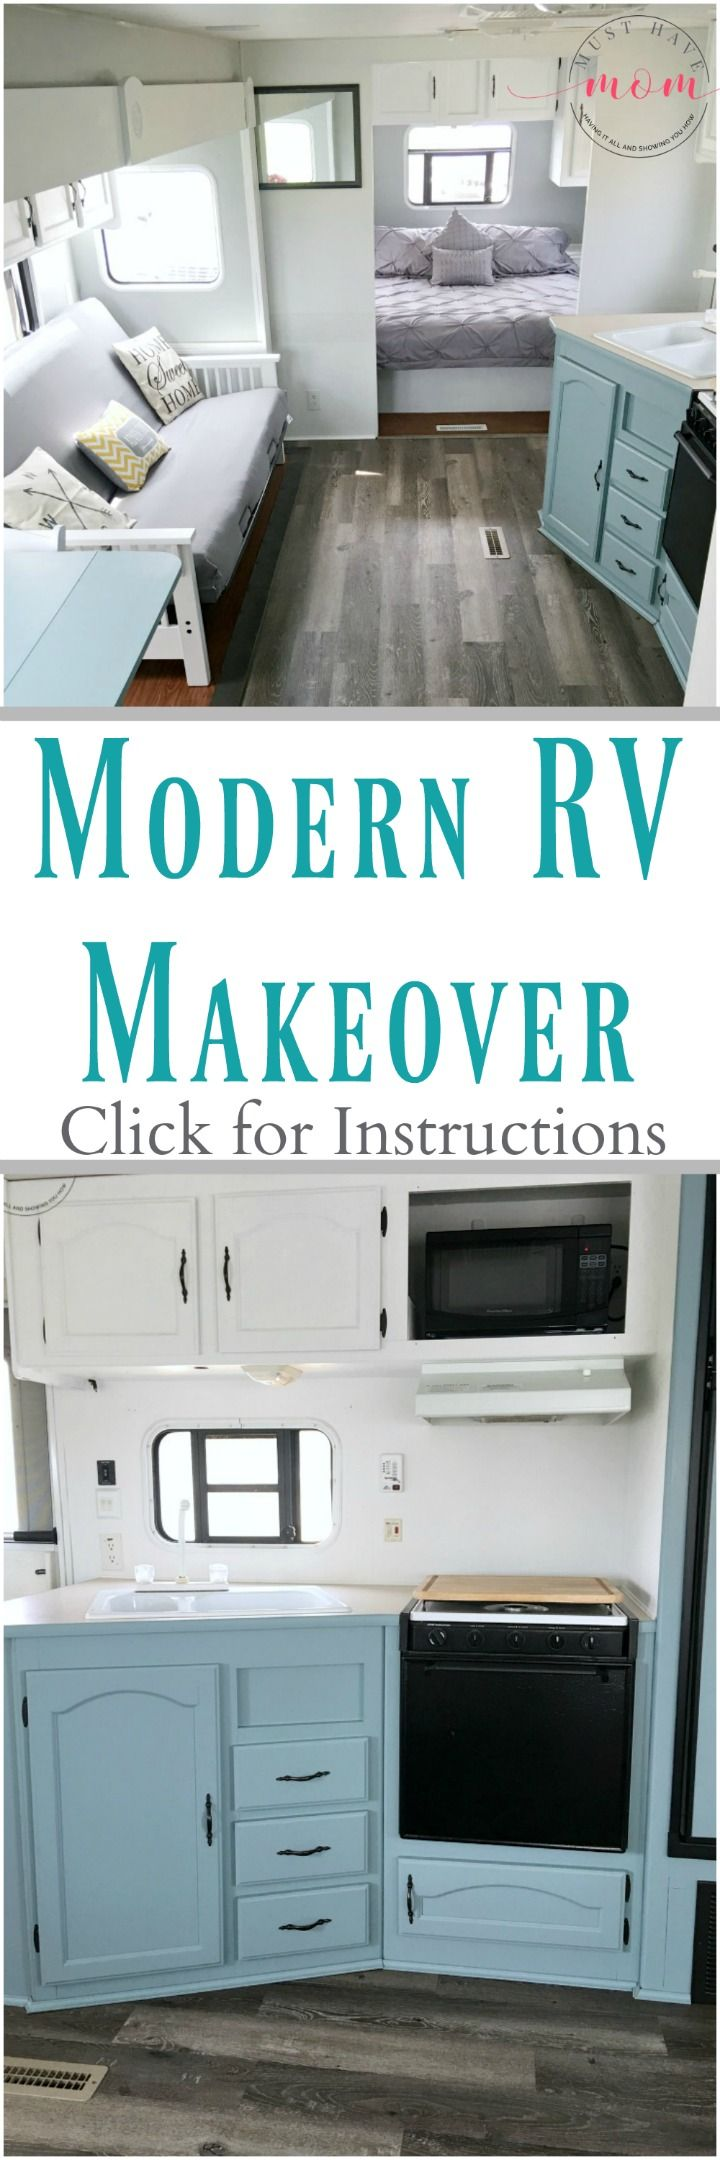 rv cabinets rv kitchen cabinets Easy RV Makeover with instructions to remodel RV interior paint RV walls paint 2